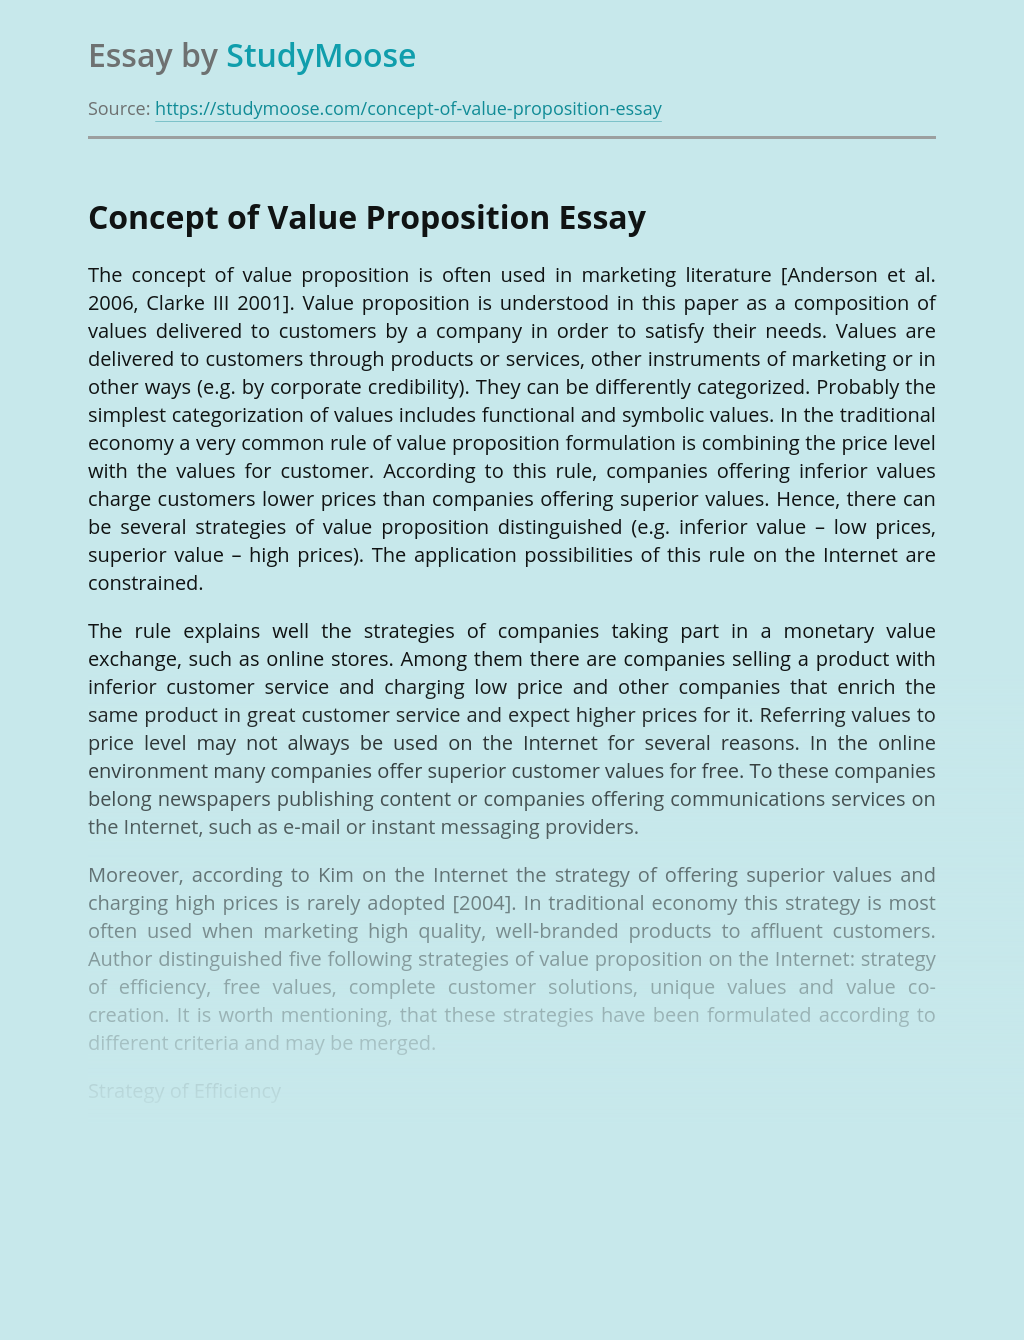 Concept of Value Proposition